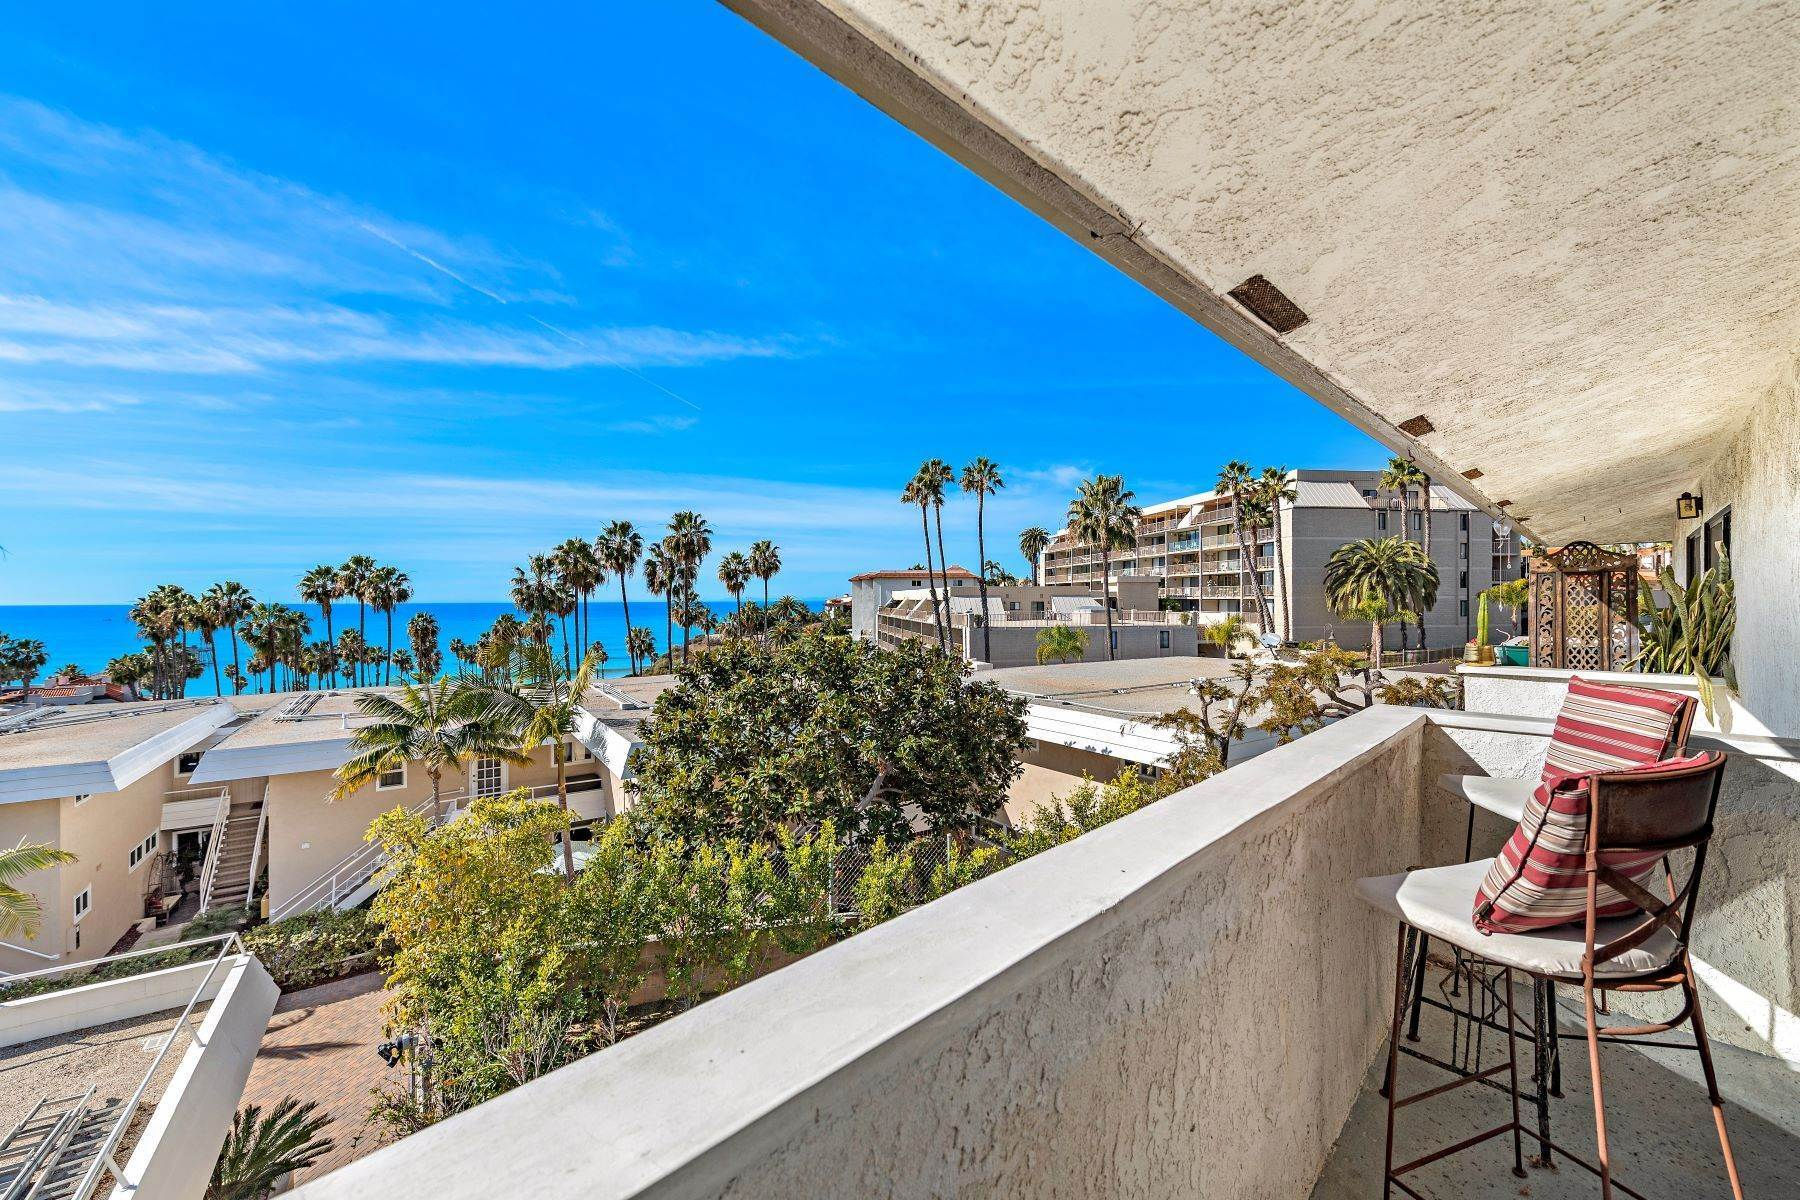 22. Condominiums for Sale at 321 Acebo Lane Unit #C, San Clemente, CA 92672 321 Acebo Lane, Unit #C San Clemente, California 92672 United States